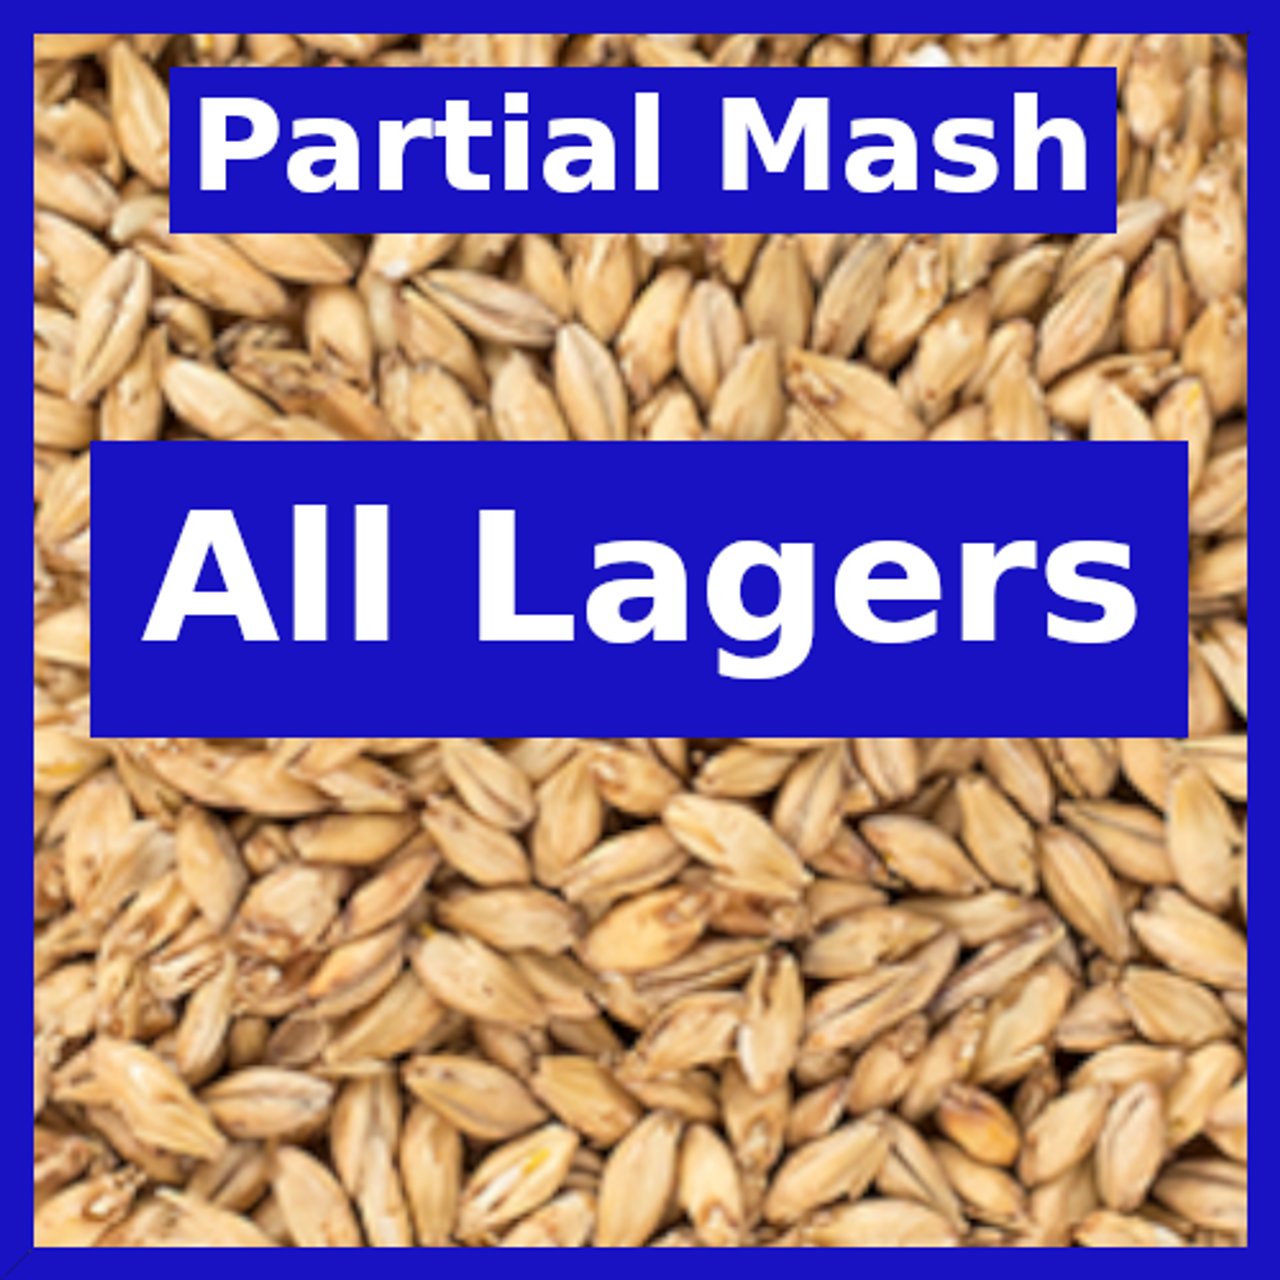 All Lagers - Partial Mash